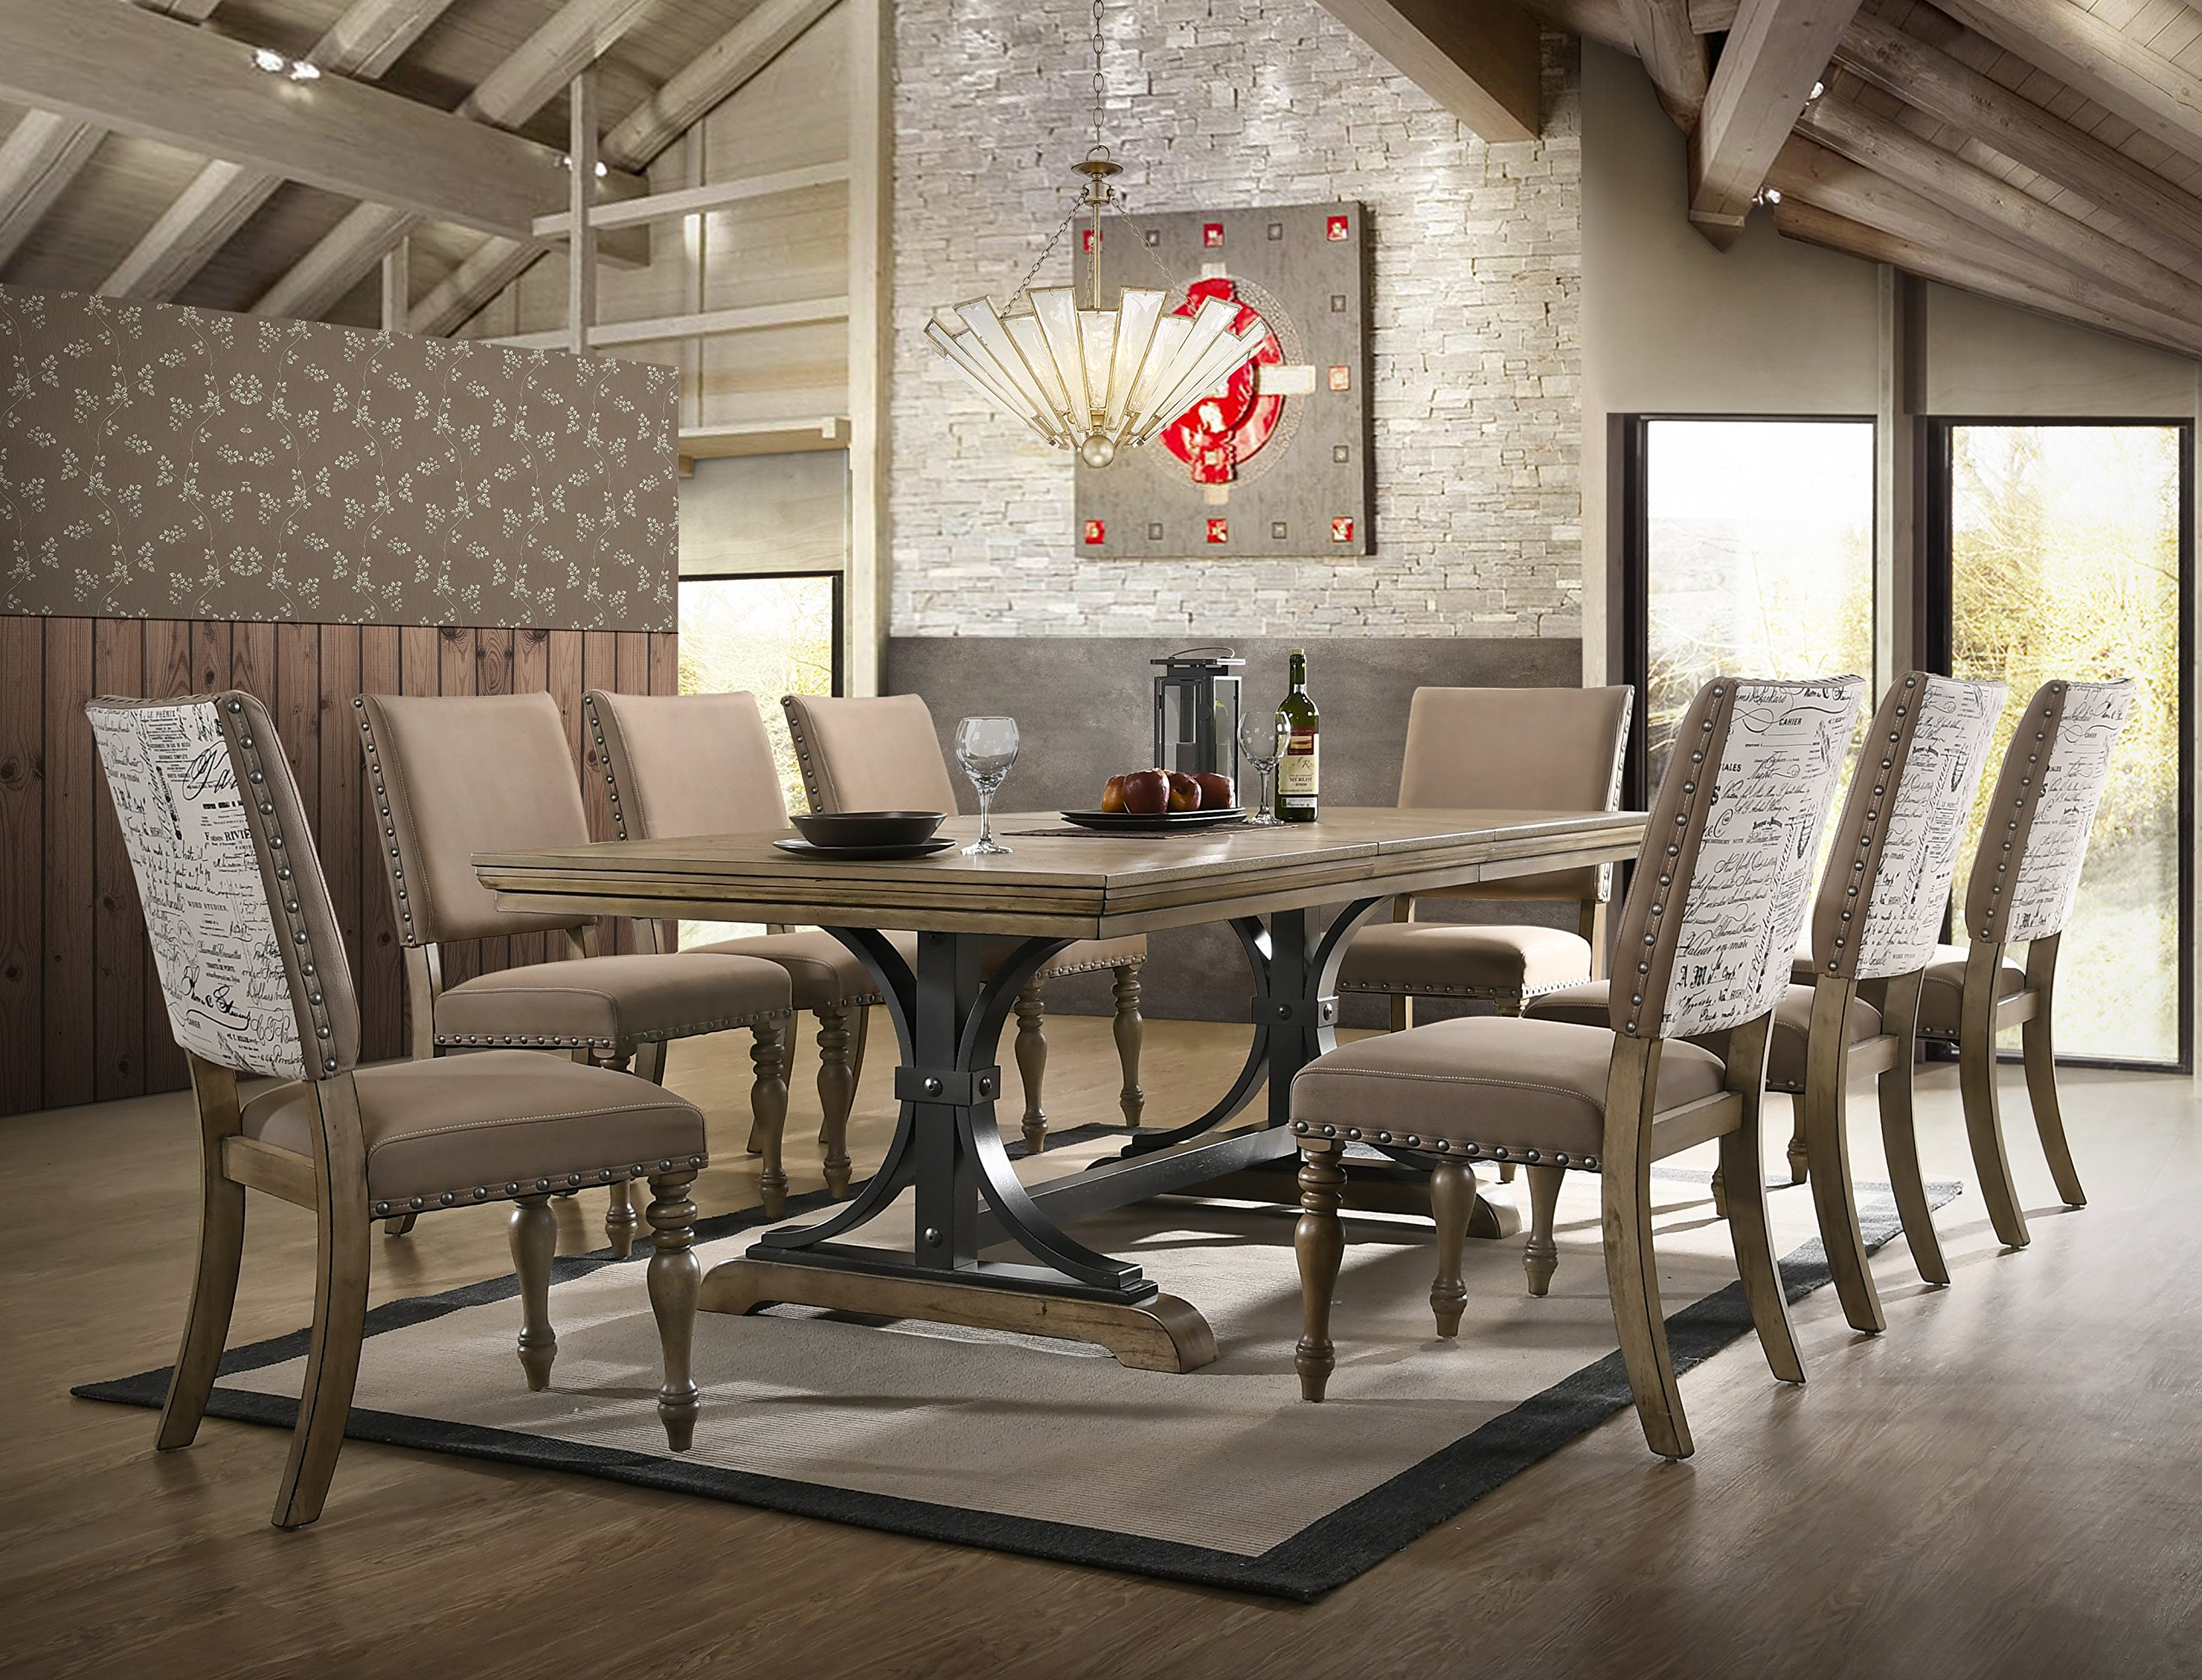 Roundhill Furniture T428-C428-C428-C428-C428 Kitchen and Dining Room Sets, One Size, Brown